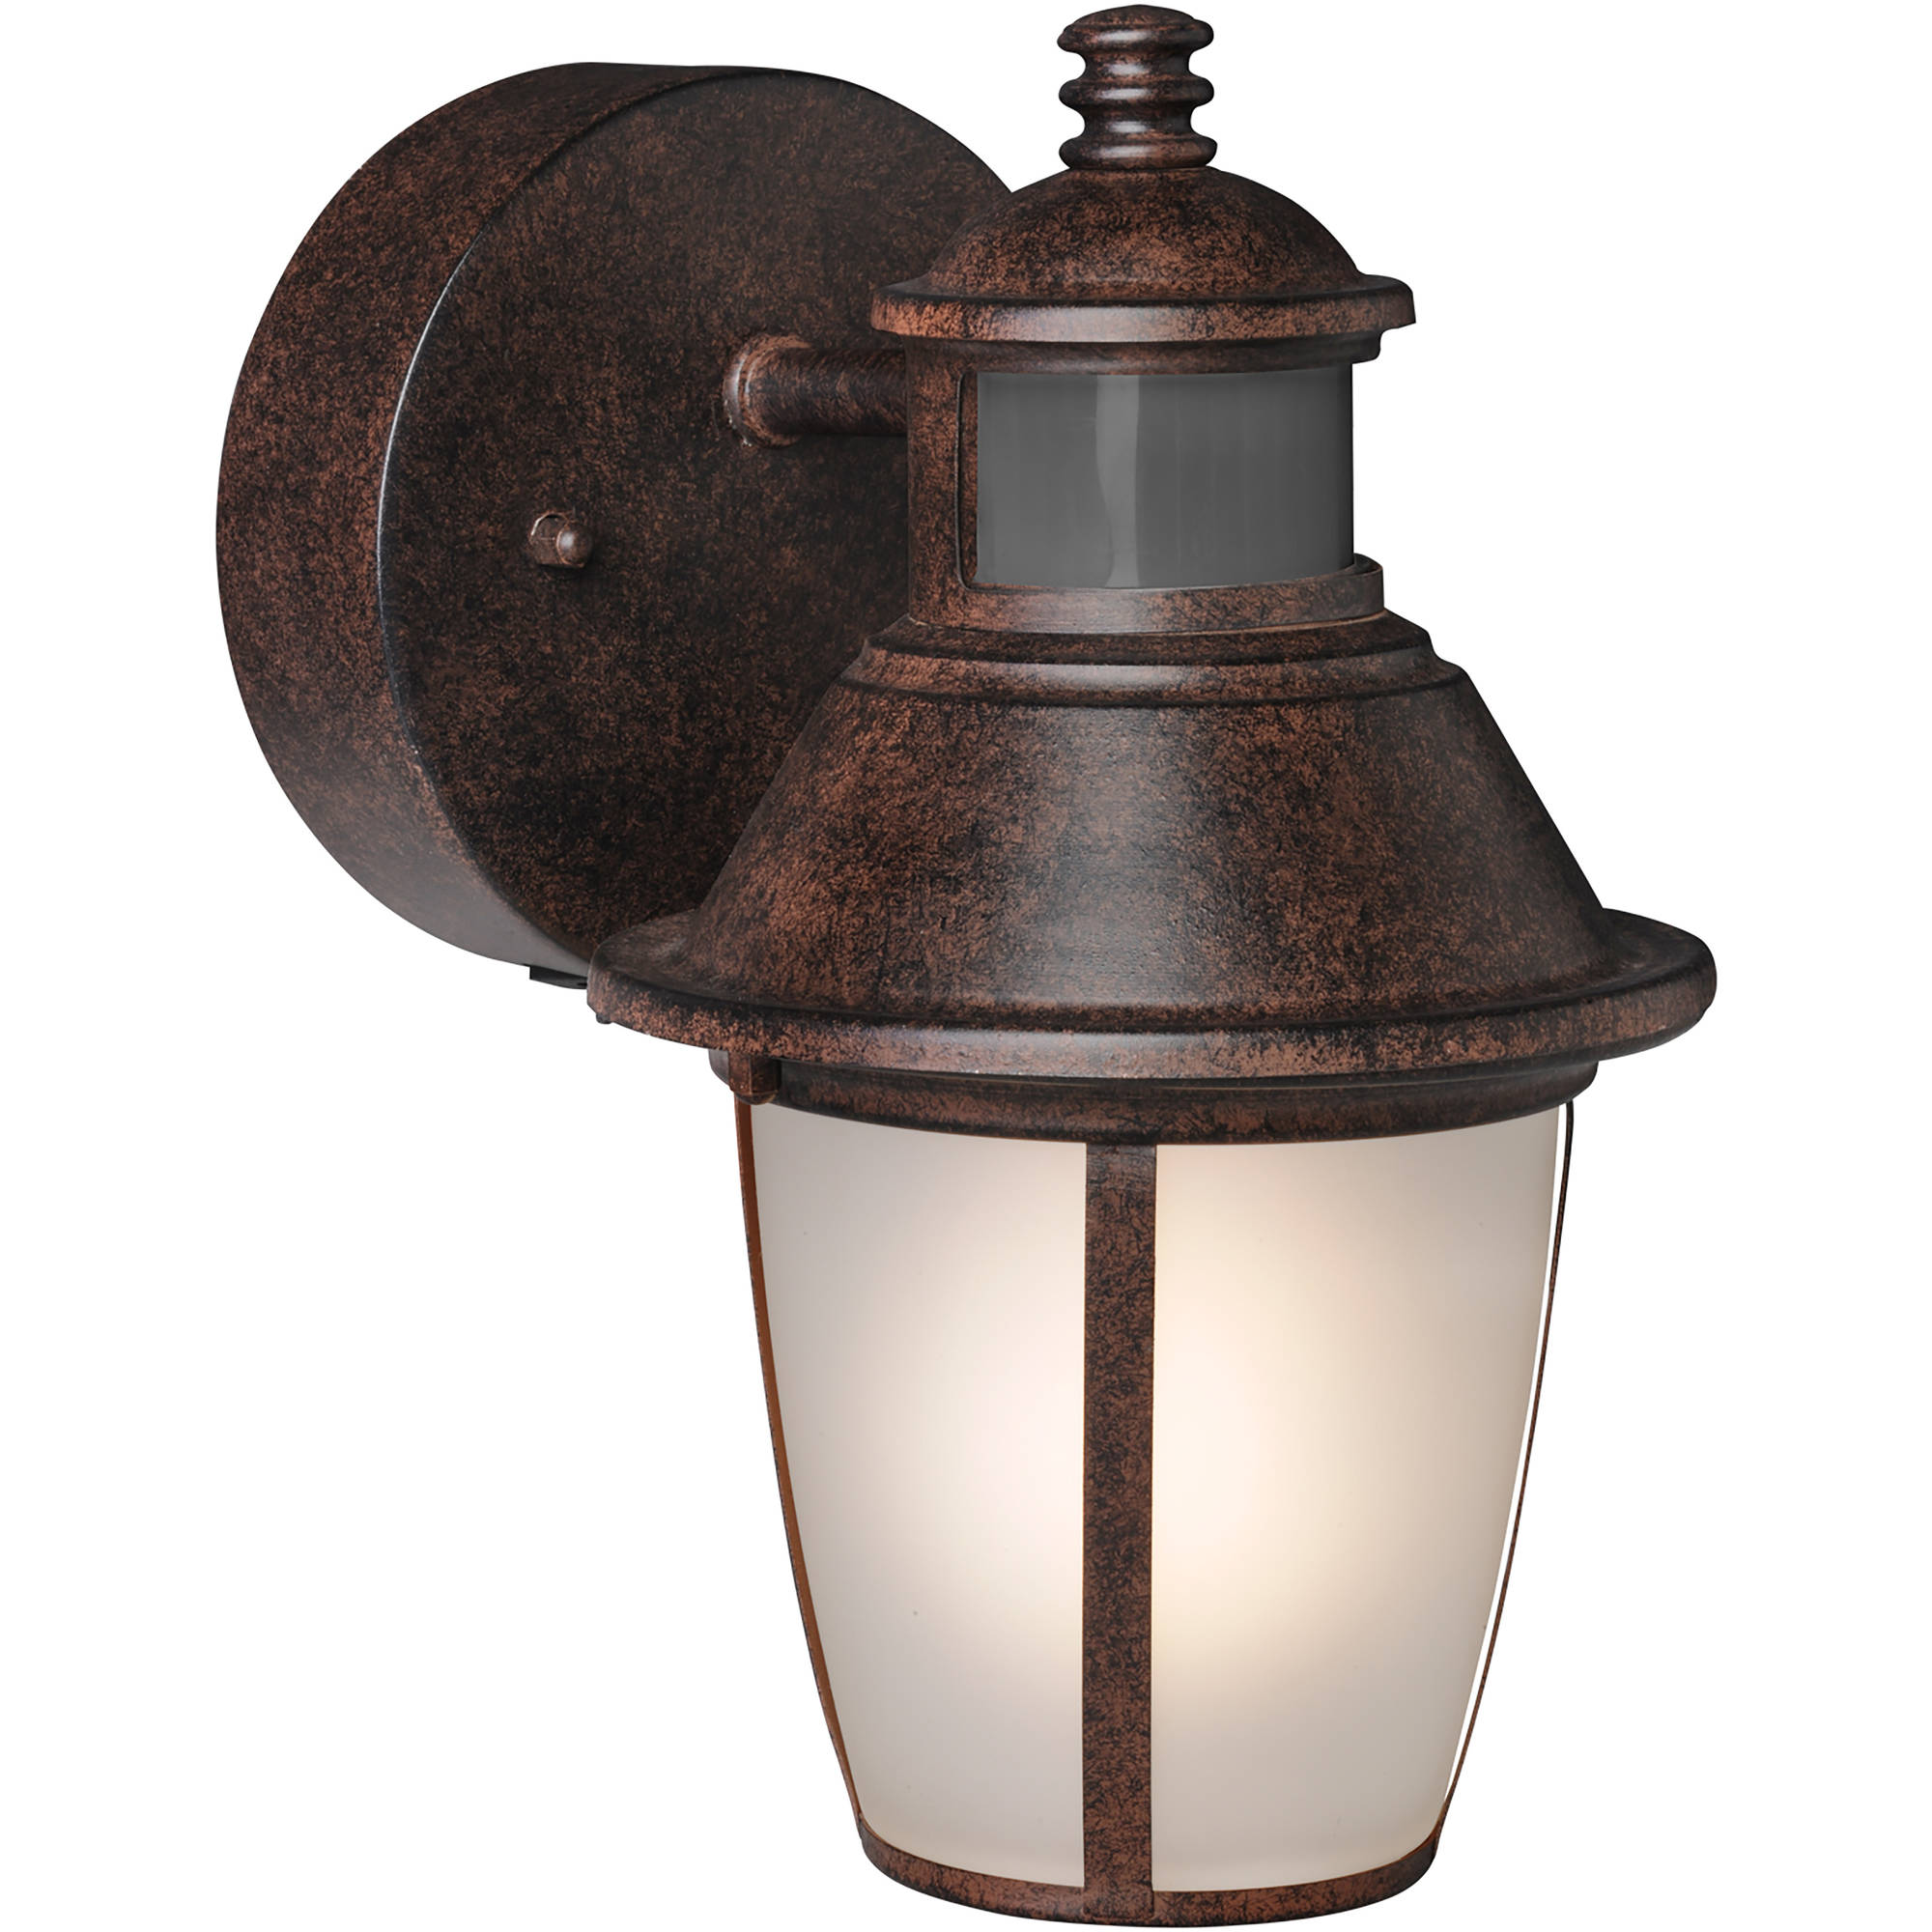 brinks led outdoor wall lantern motion security light bronze walmartcom - Led Motion Sensor Light